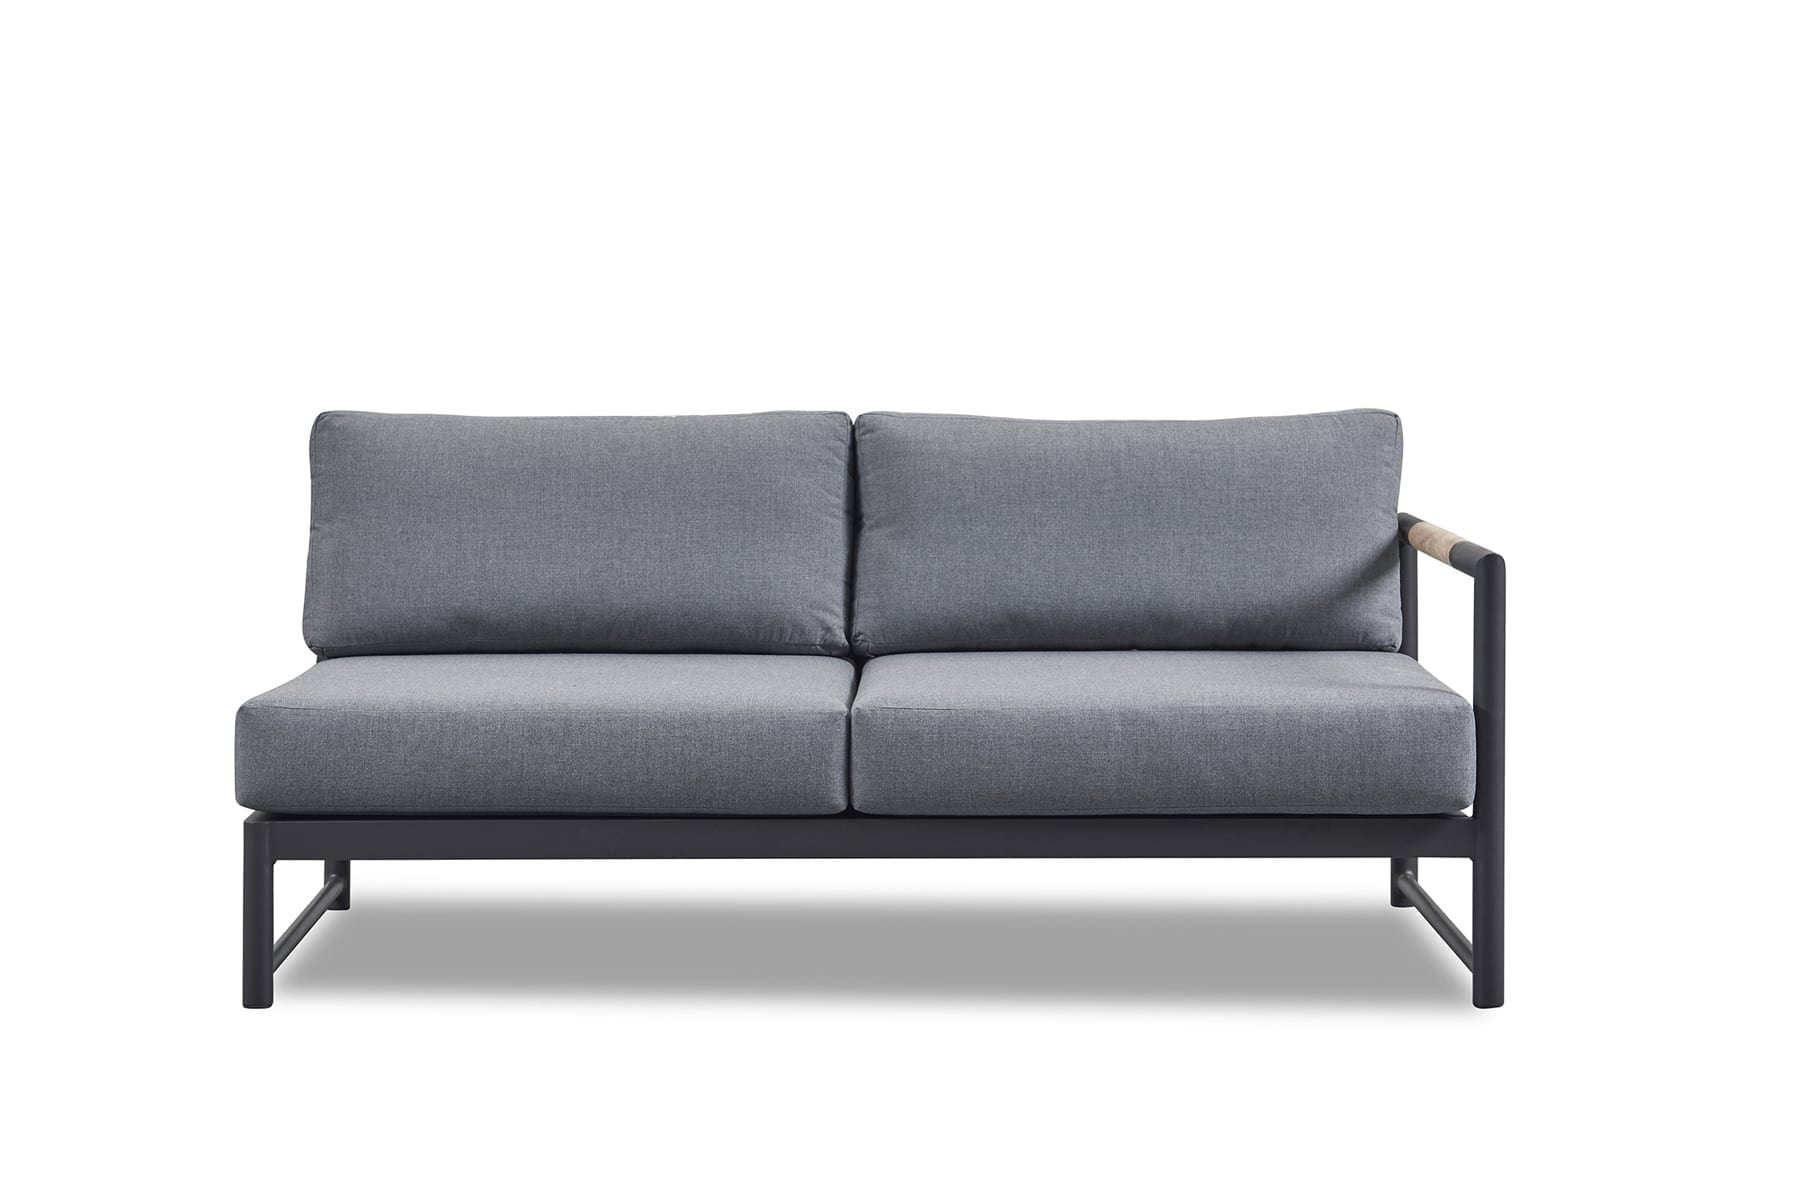 Breeze XL 2 Seat Sofa